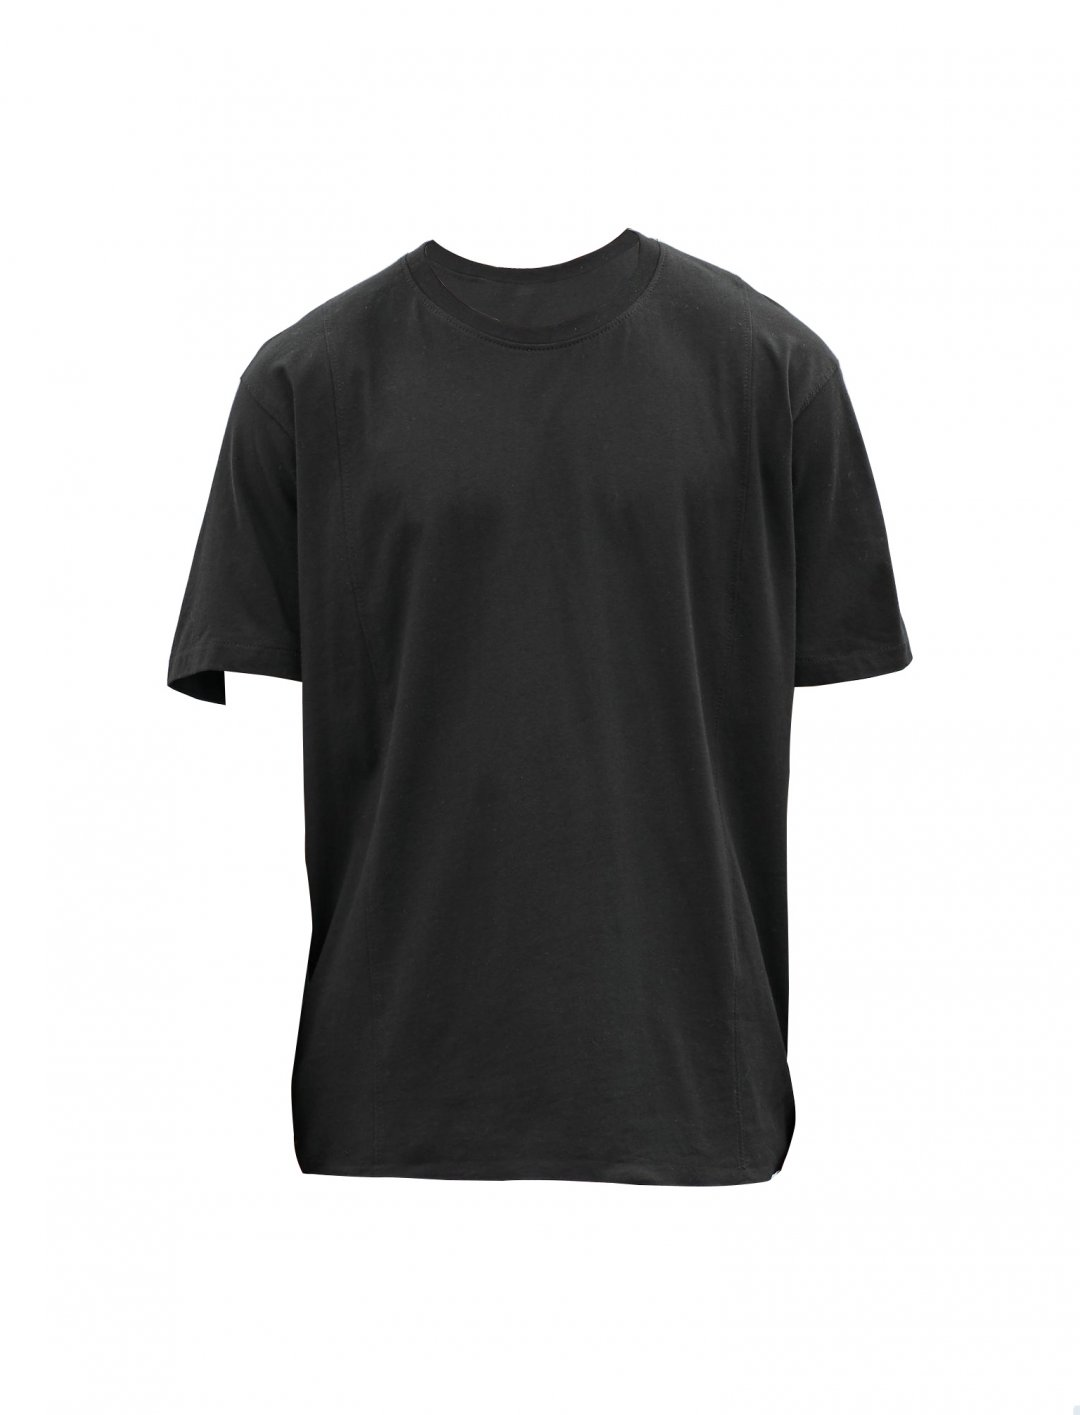 "Lotto Boyzz' T-Shirt In Black {""id"":5,""product_section_id"":1,""name"":""Clothing"",""order"":5} Mennace"